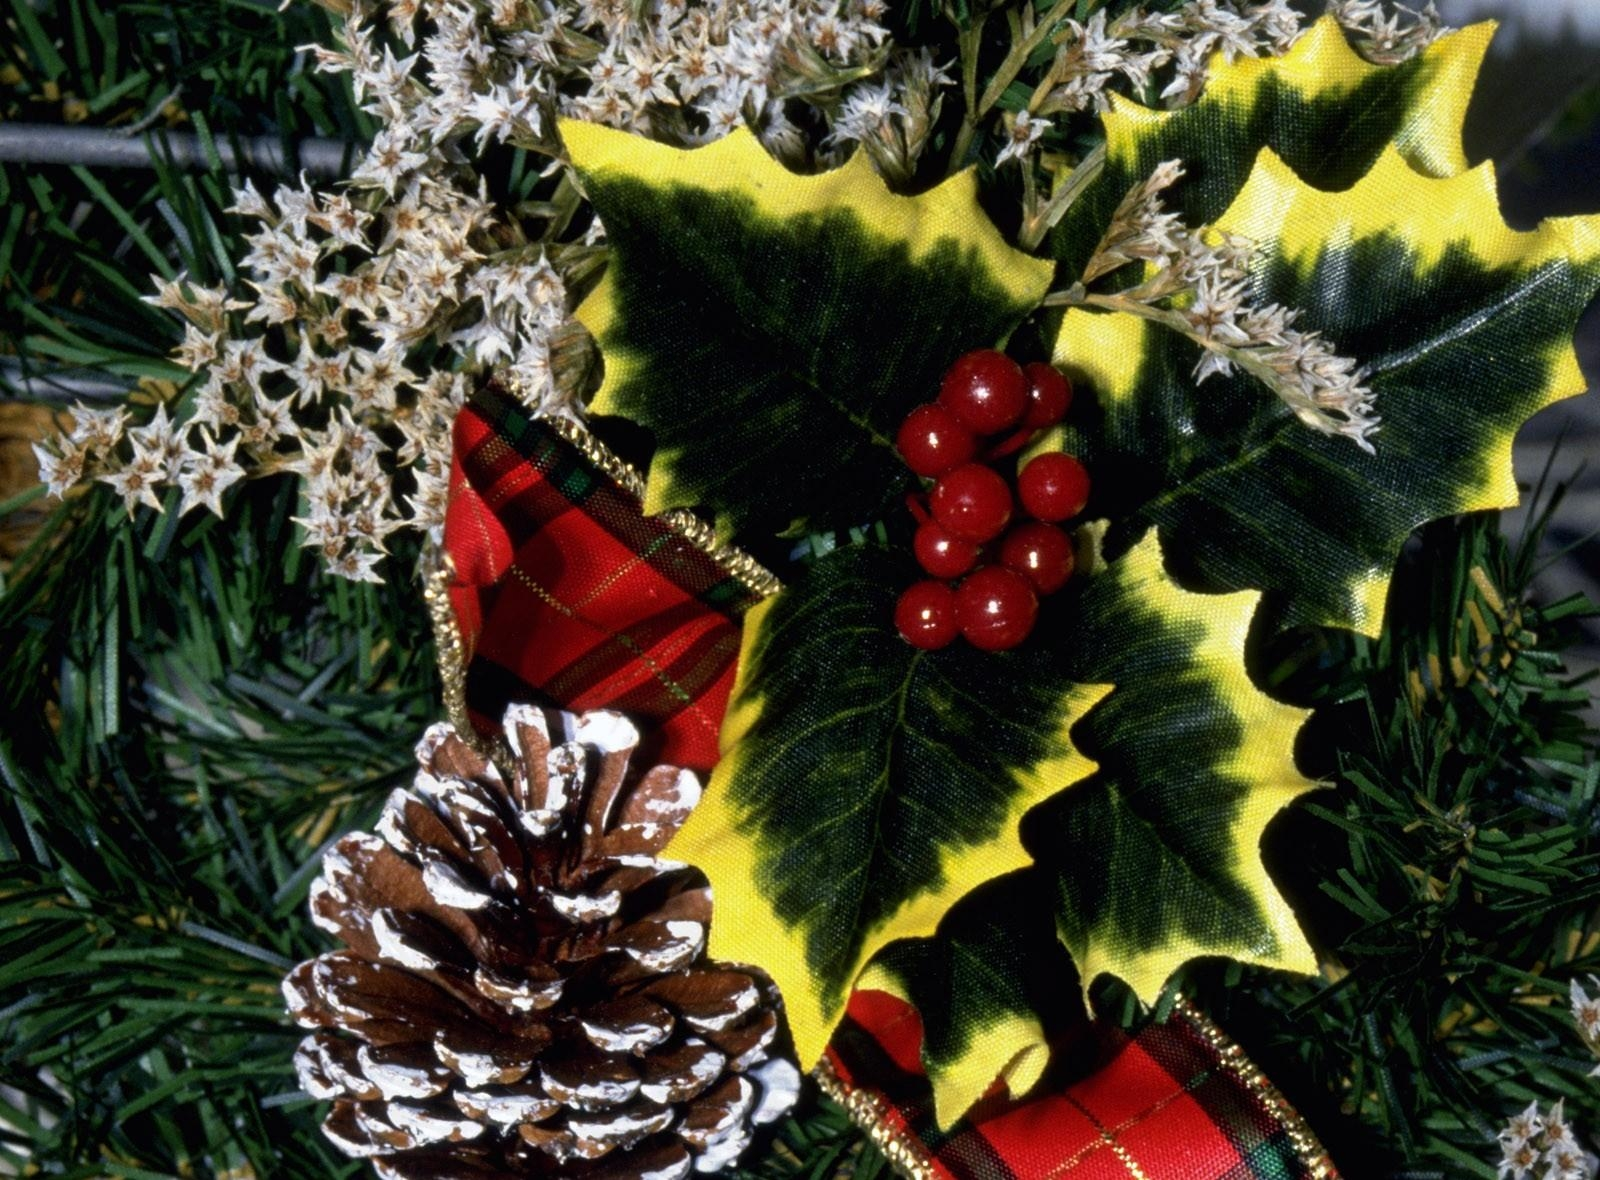 95167 download wallpaper Holidays, Cones, Needles, Holiday, Decorations, Berries screensavers and pictures for free